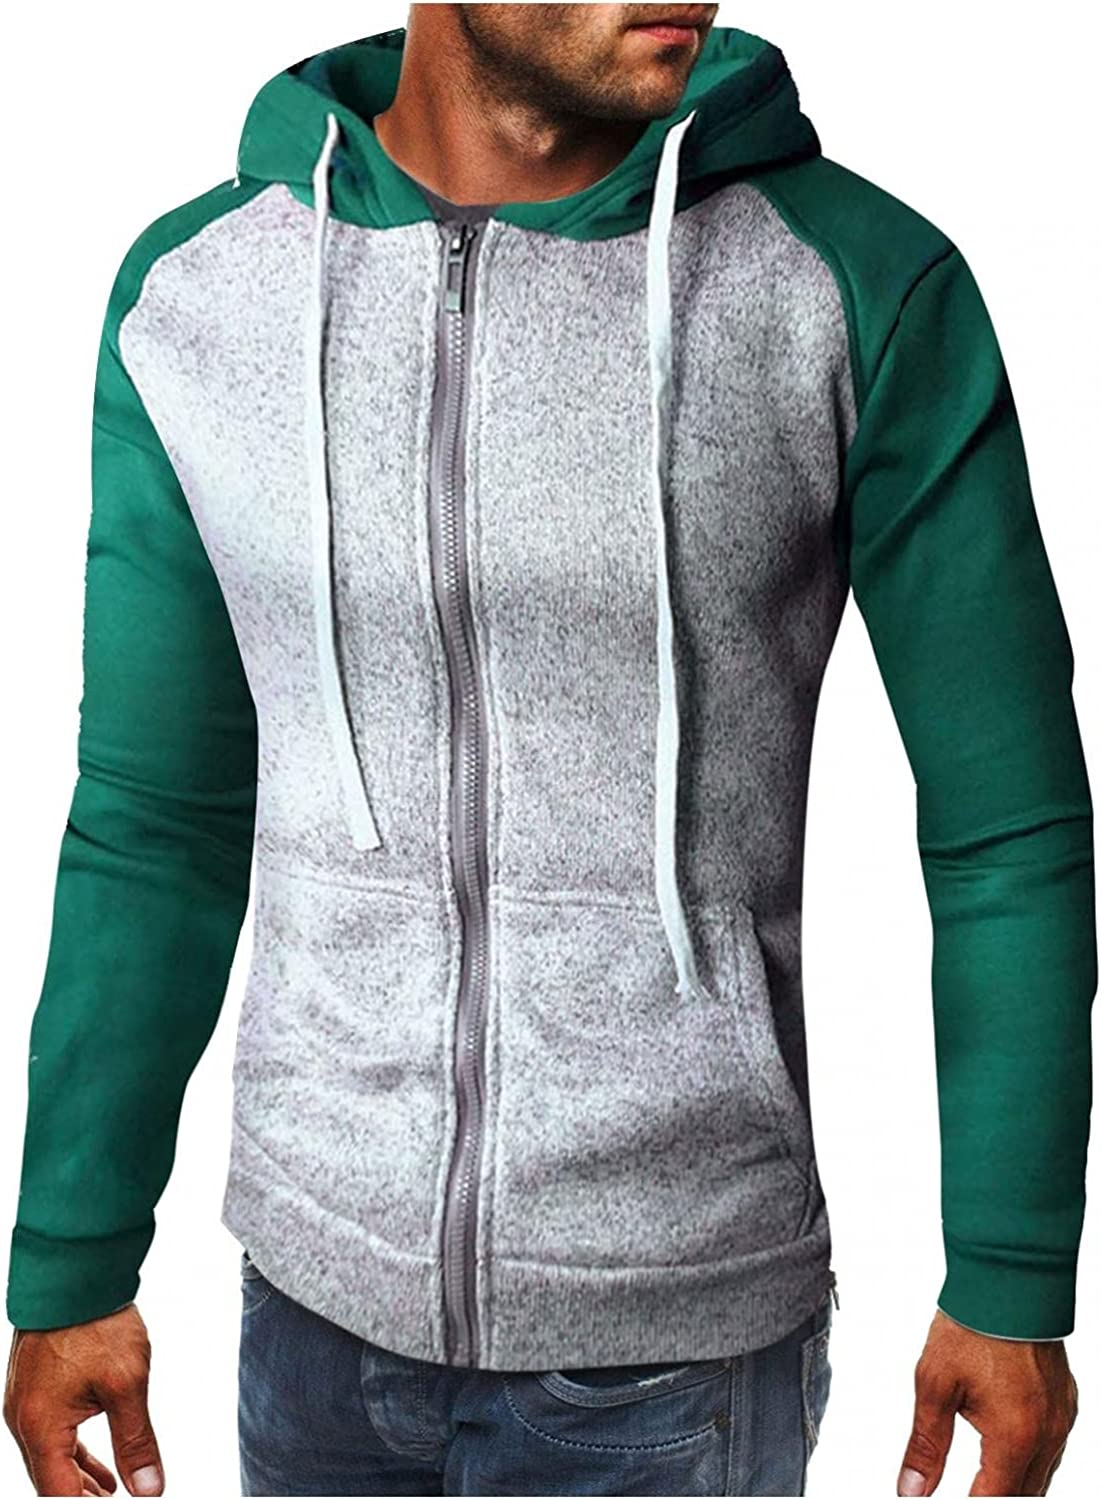 Qsctys Discount sold out mail order Hoodies for Men - Casual Mens Zip Cotto Jacket up